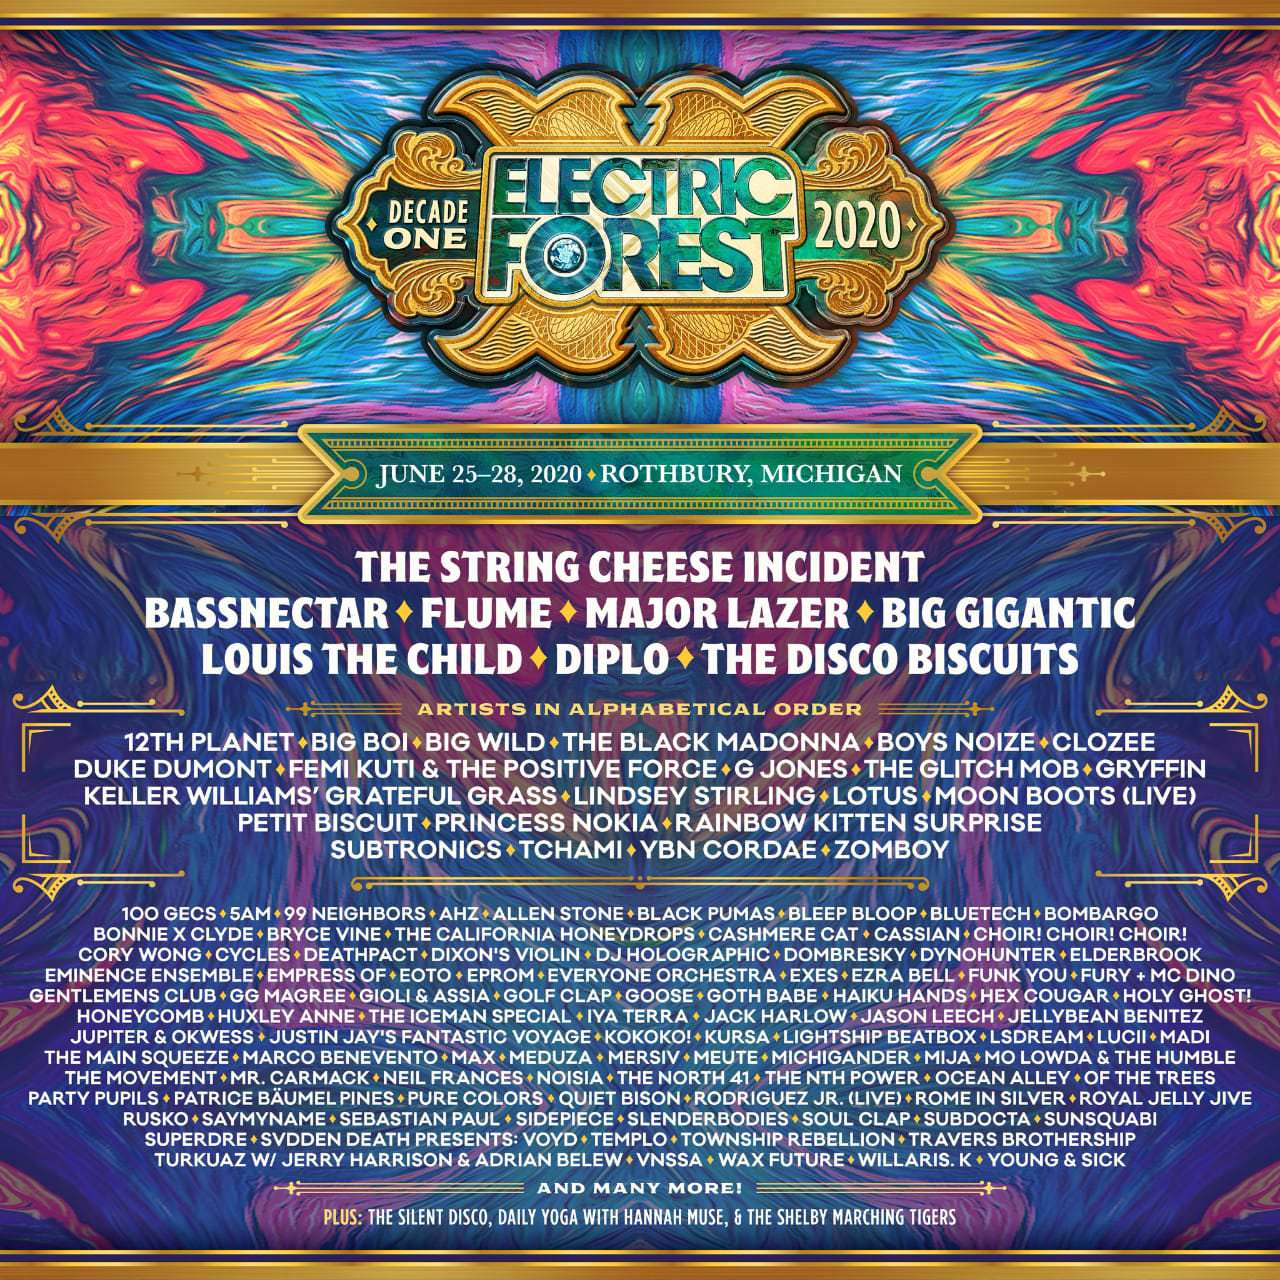 Electric Forest 2020 lineup